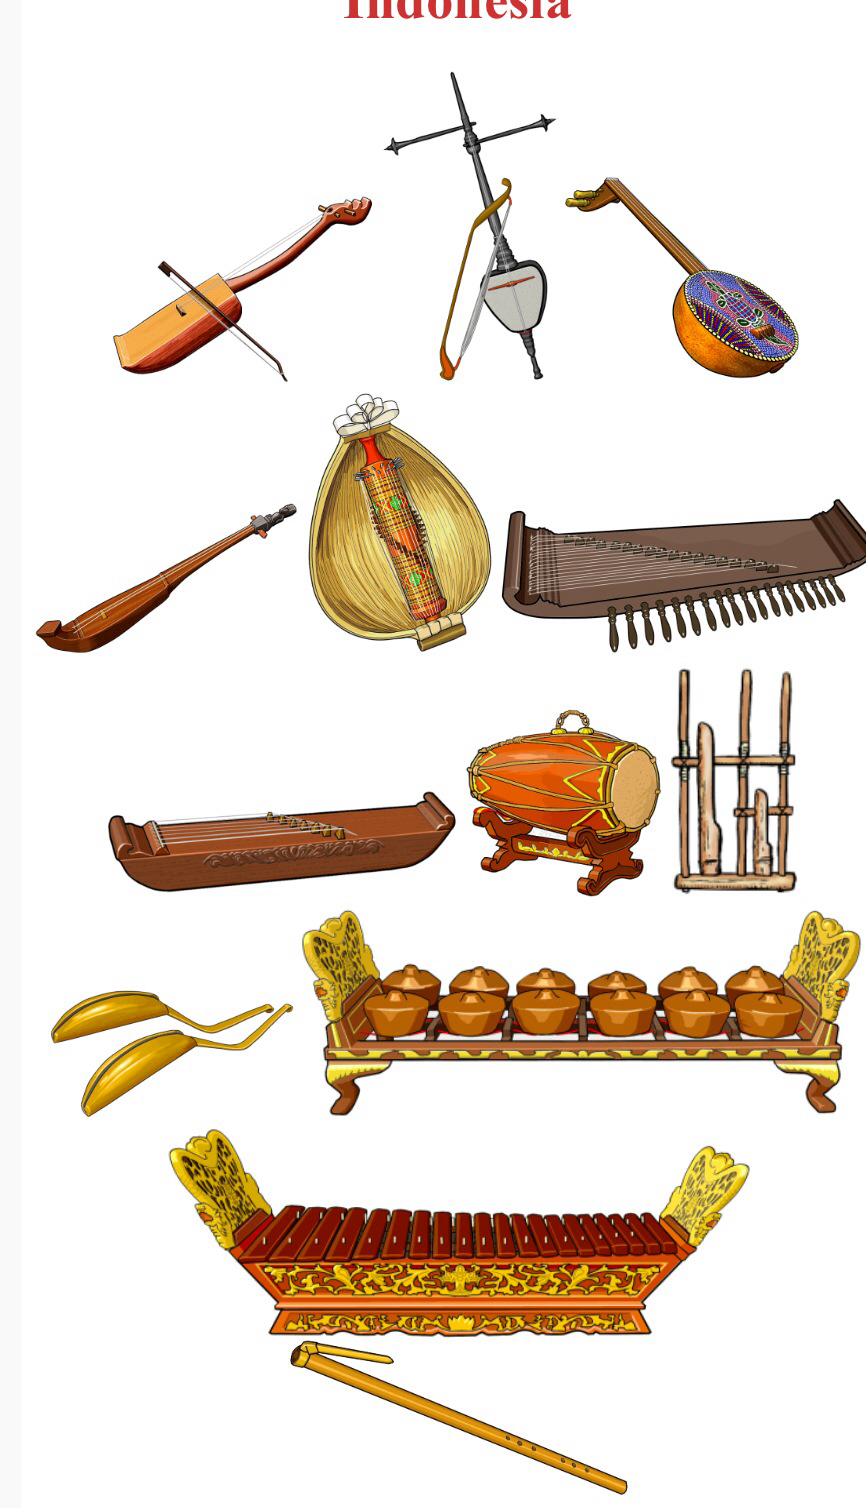 Heavy Metal clipart indian music instrument 1 left Up/Down INDONESIA right